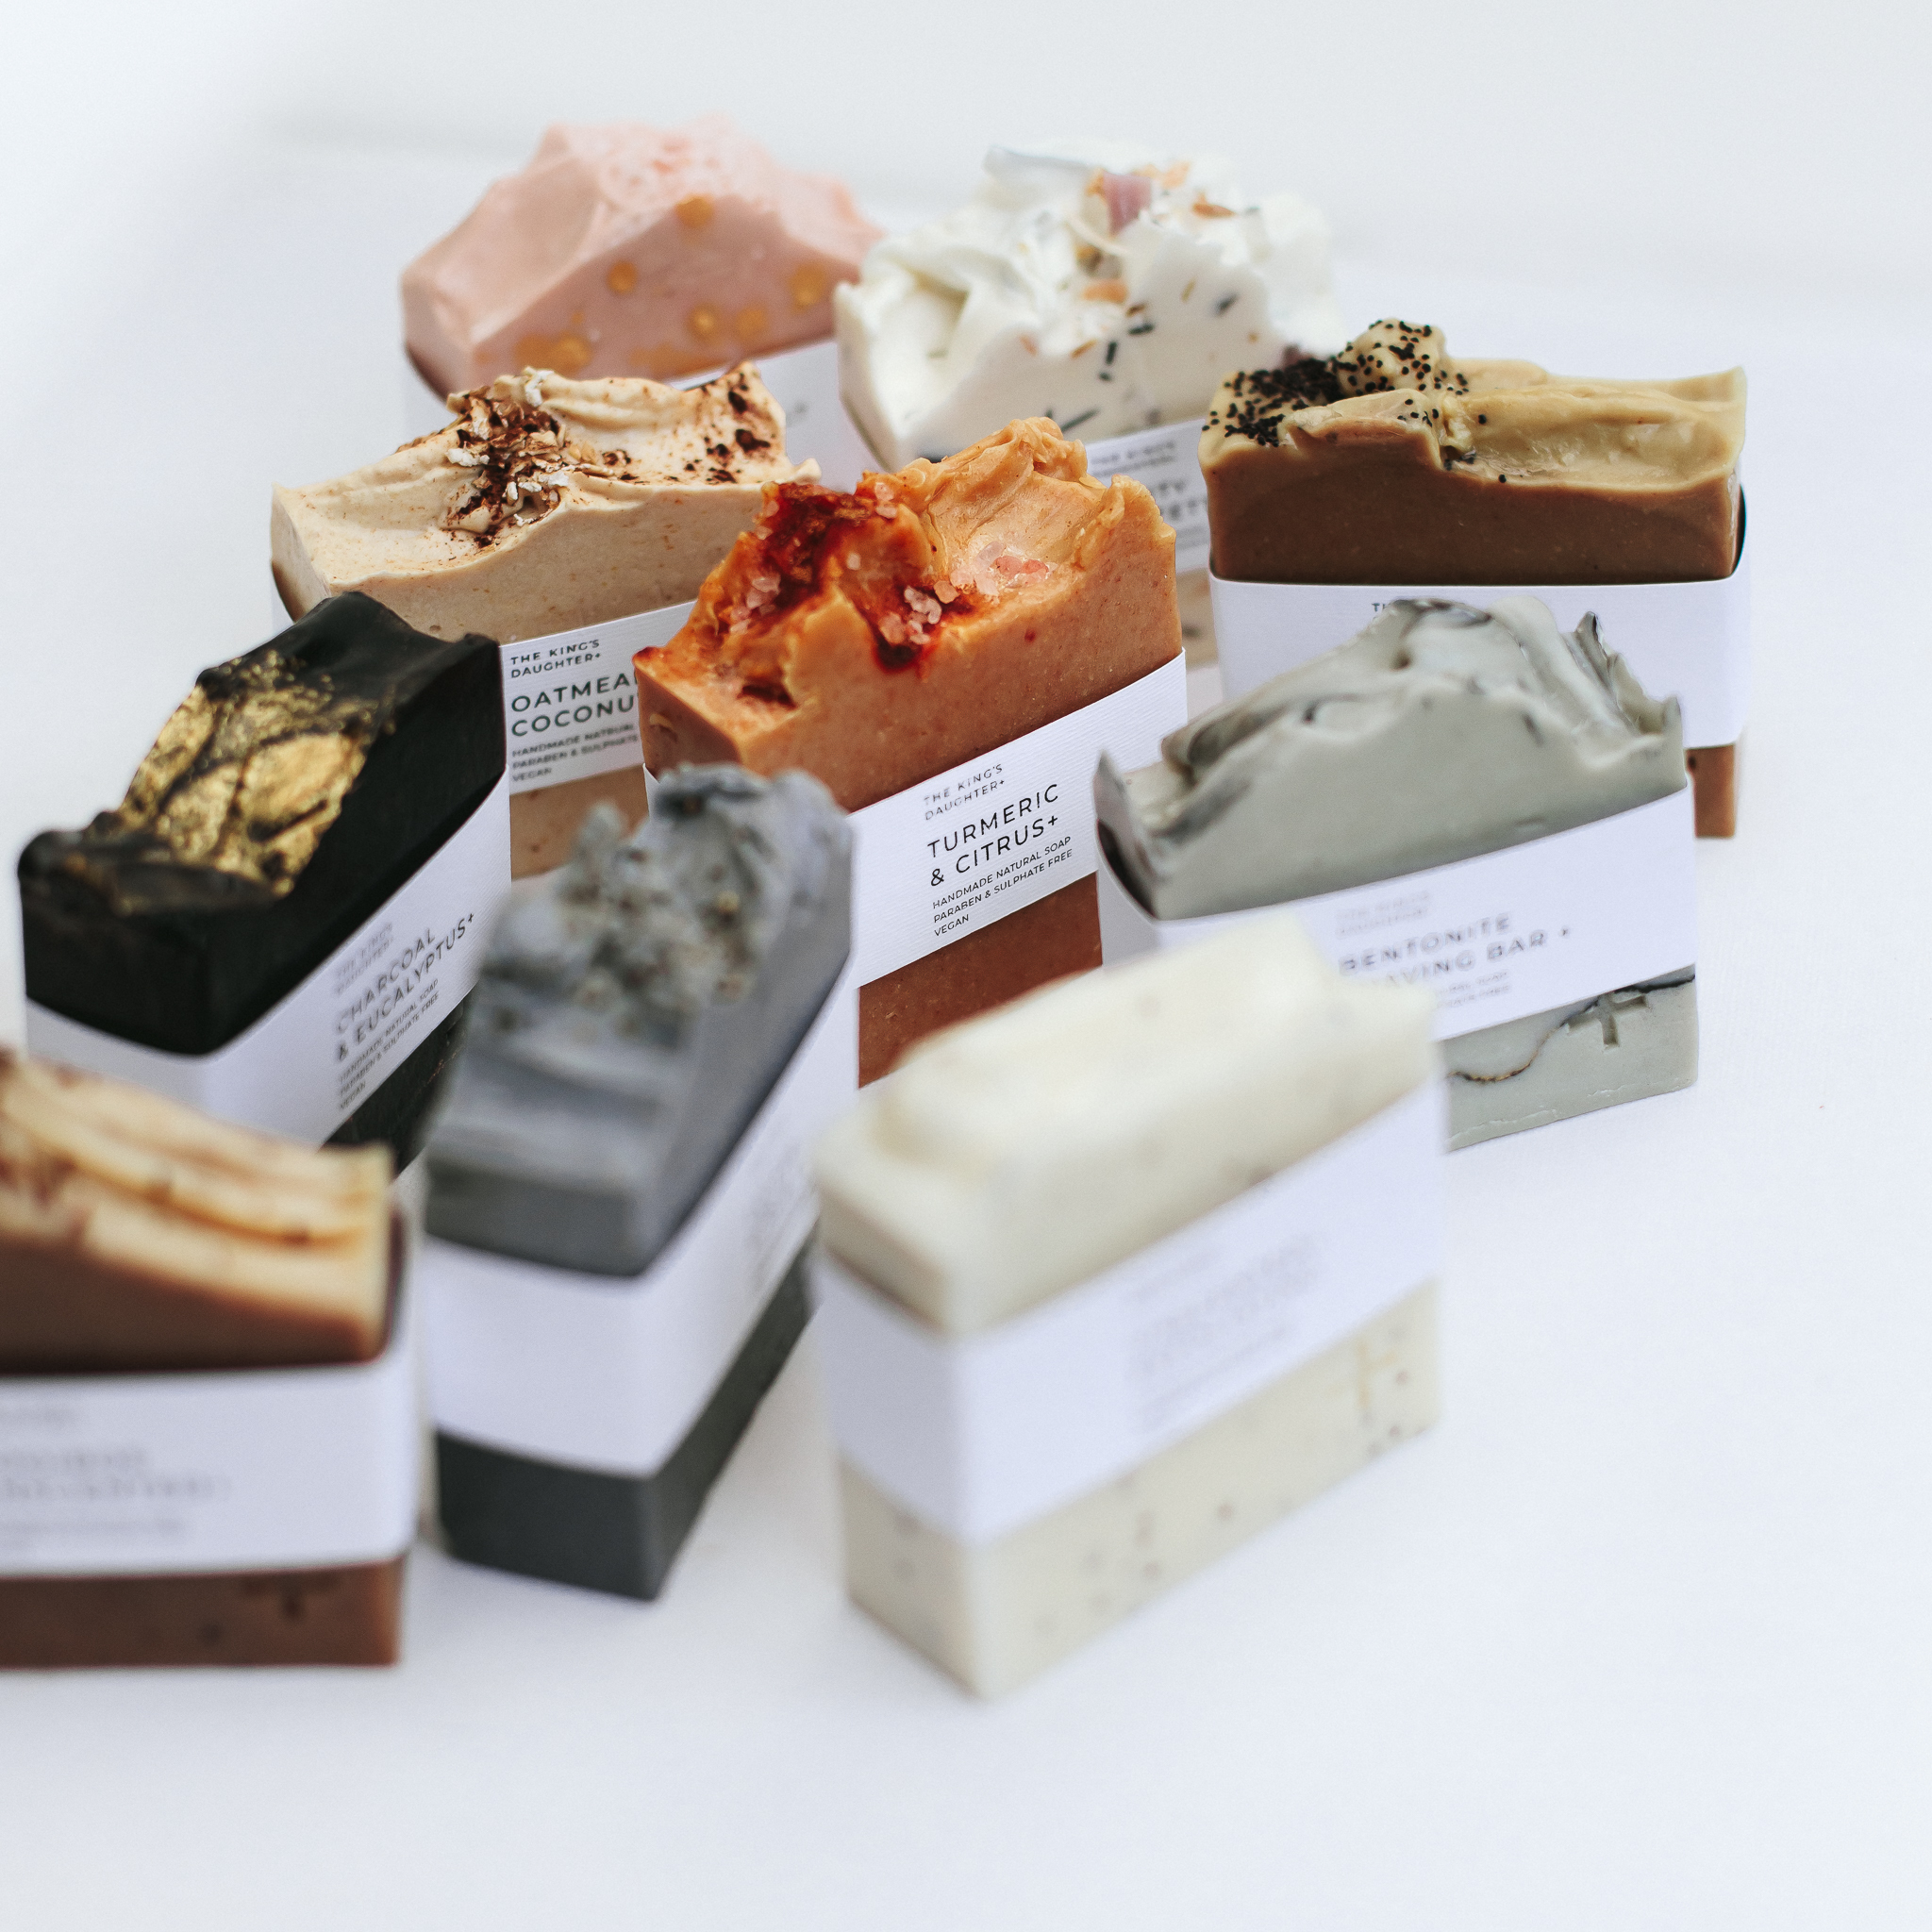 A mix of natural soap bars by The King's Daughter